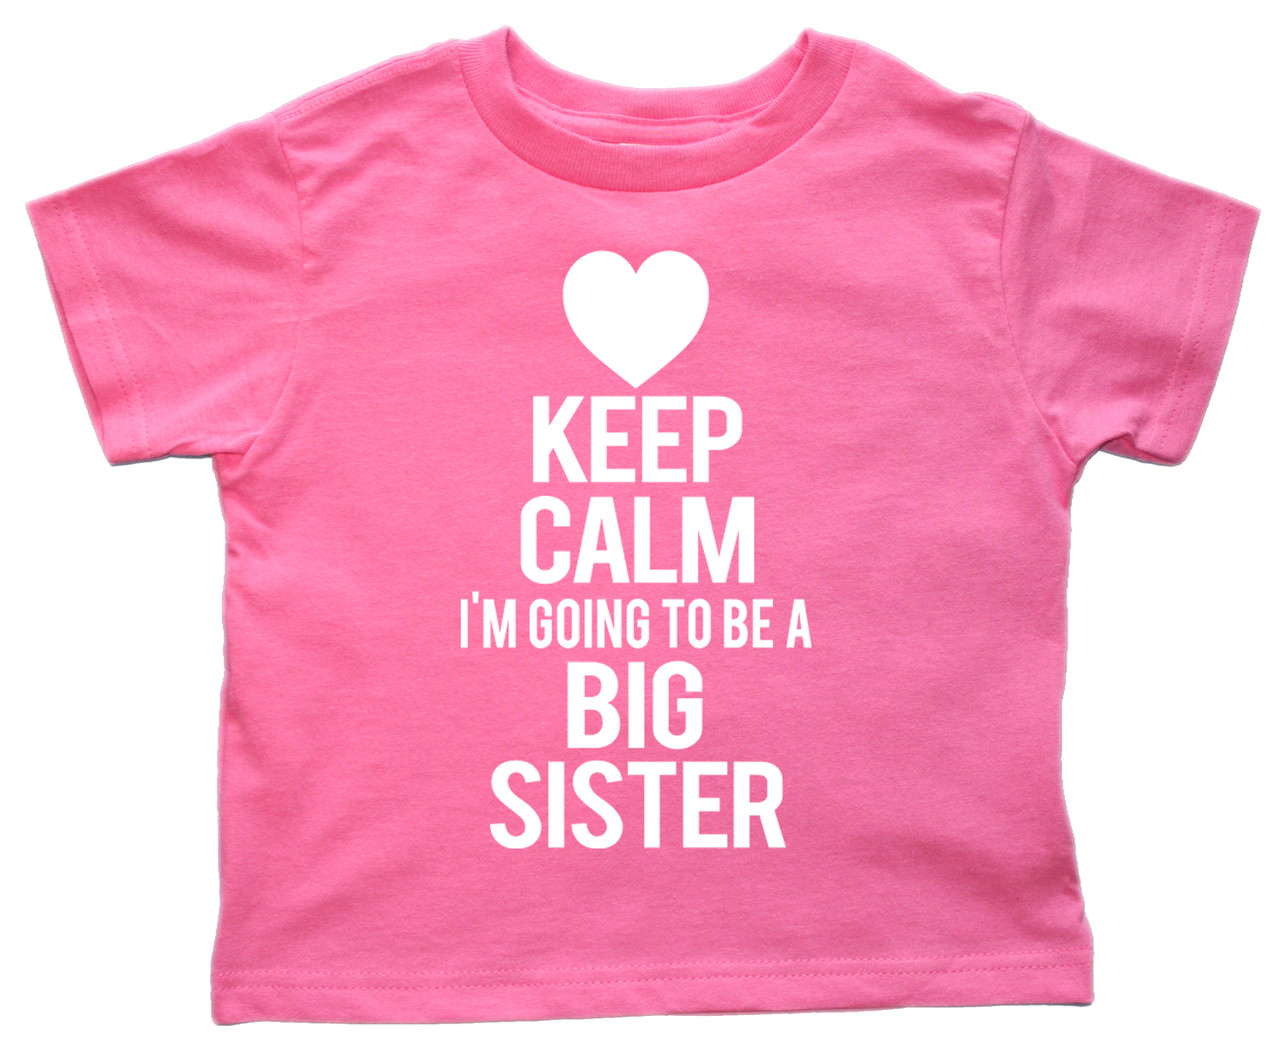 Keep calm I'm going to be a big sister pregnancy announcement tshirt